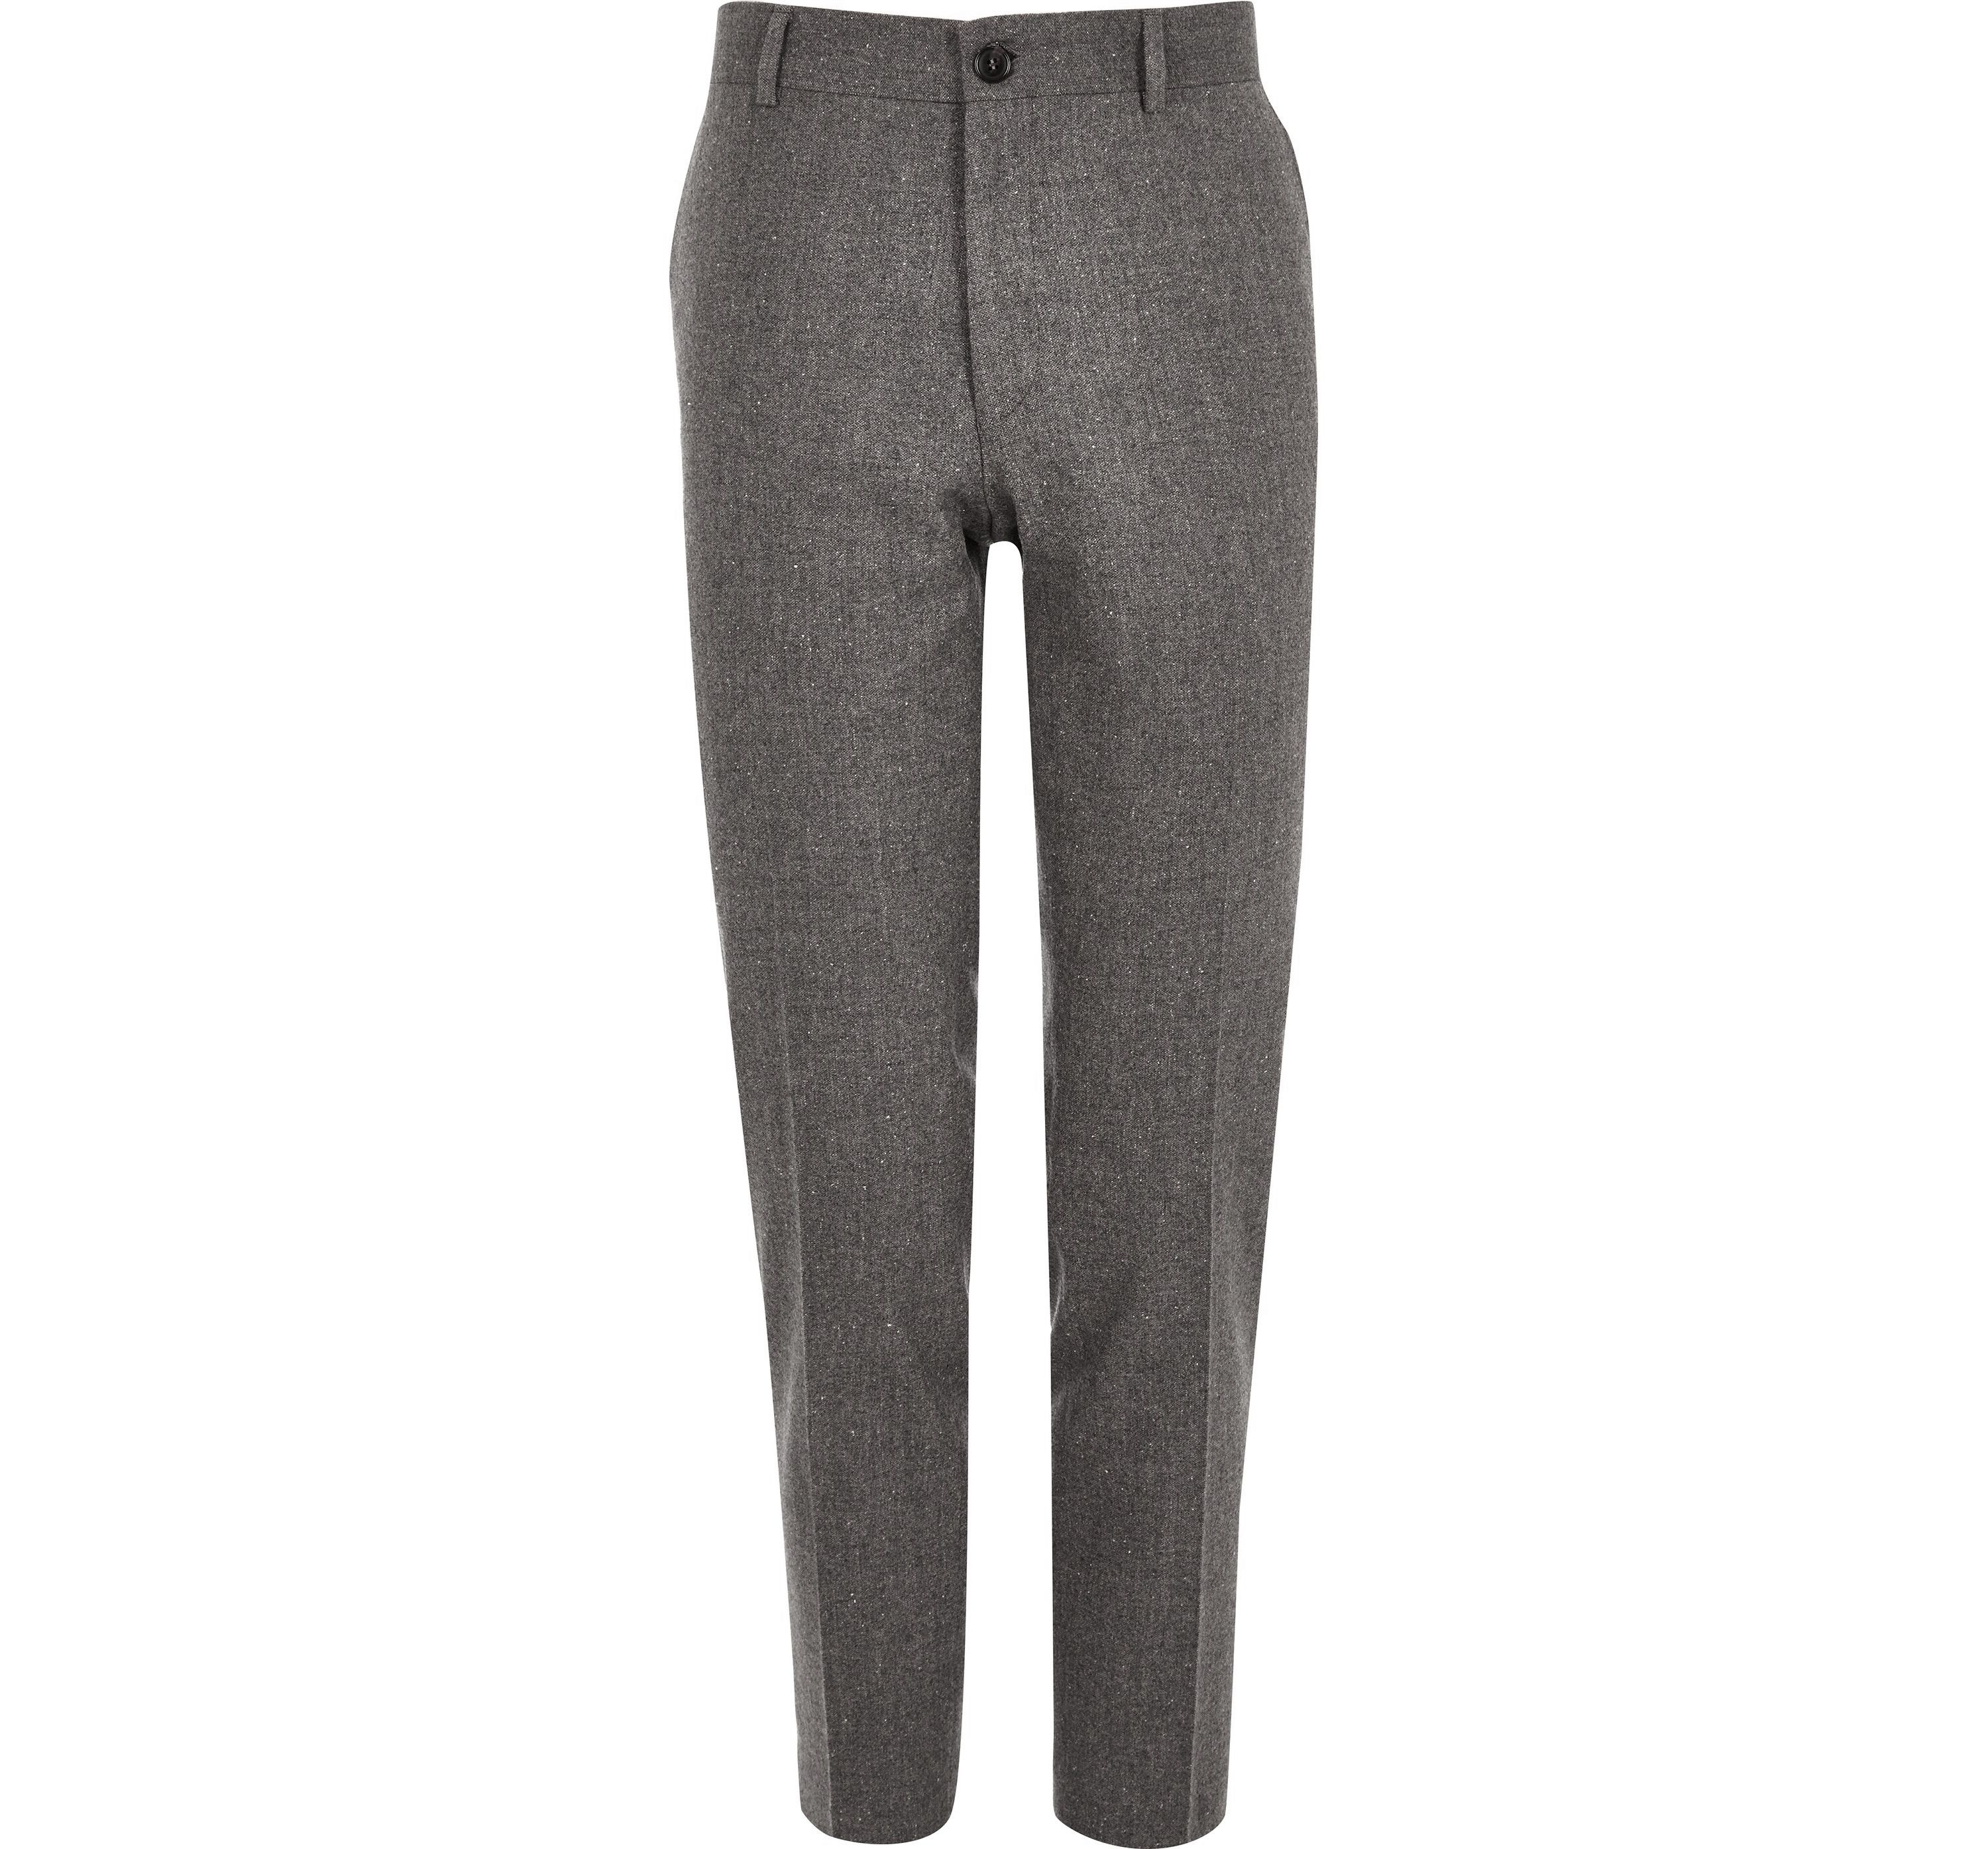 River Island Mens Grey wool blend skinny fit trousers